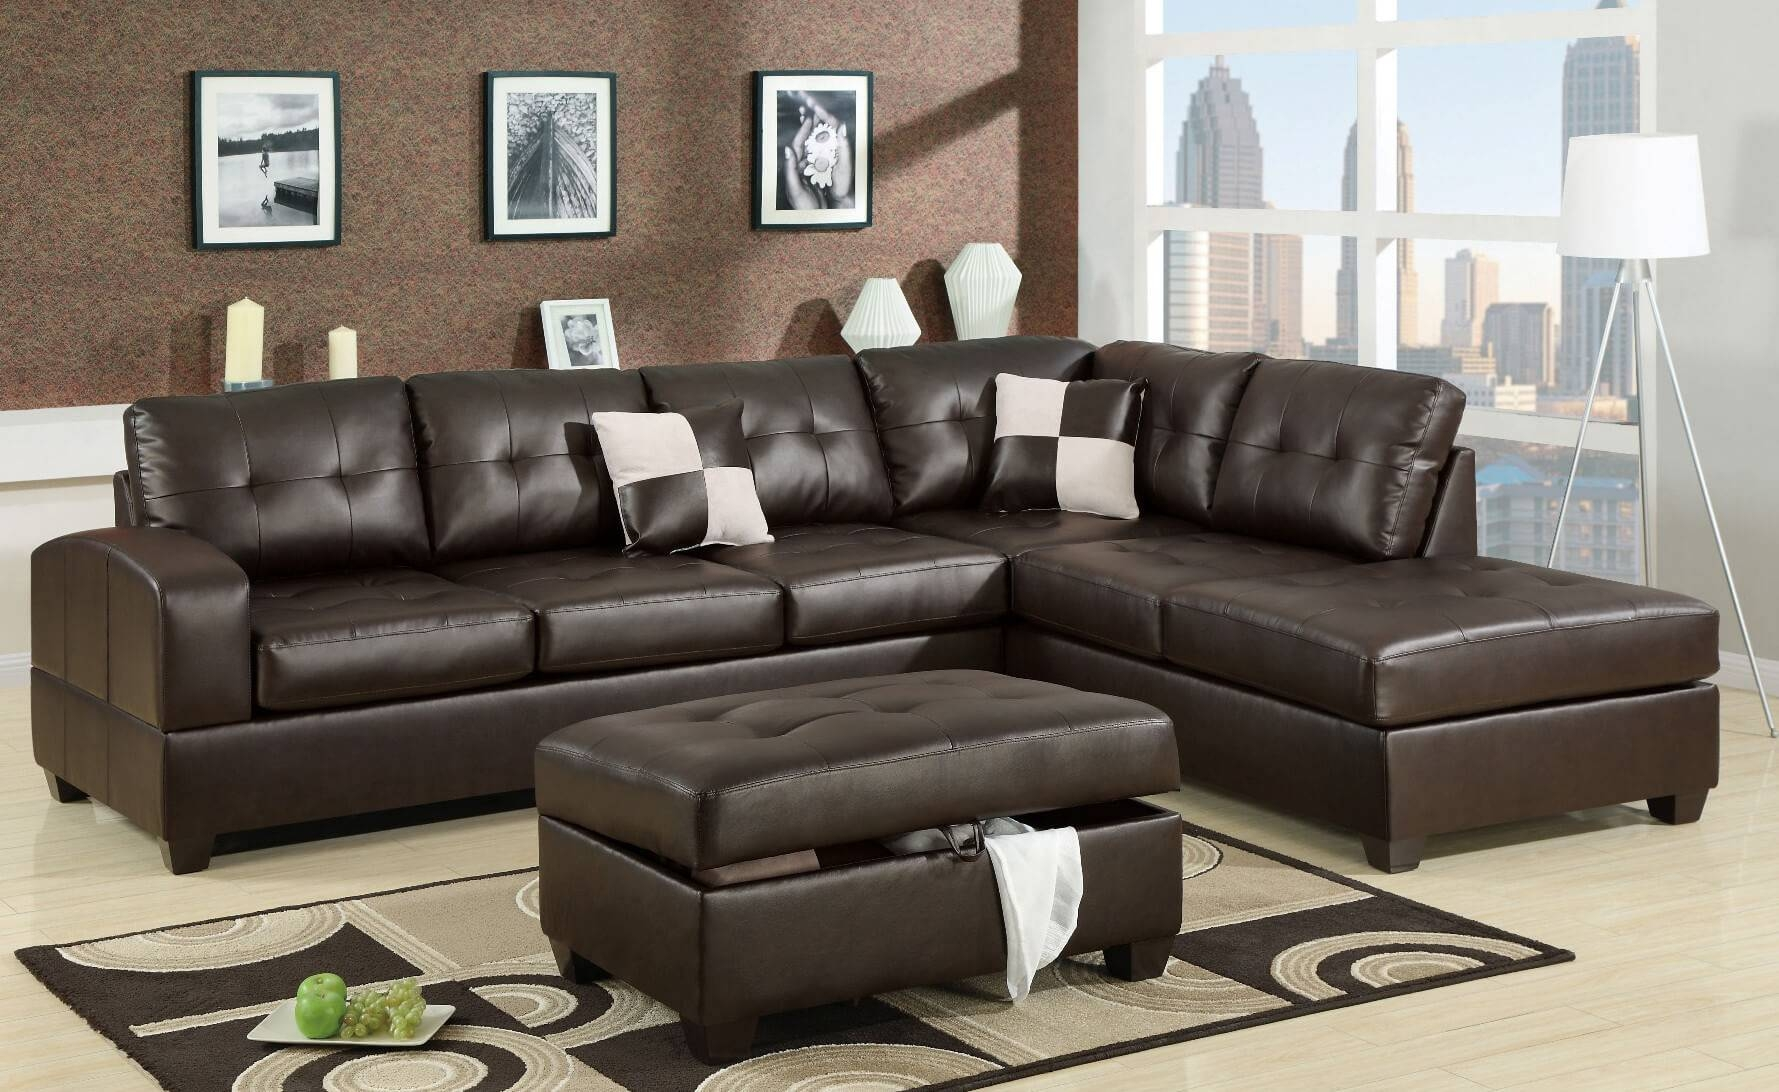 100 Beautiful Sectional Sofas Under $1,000 with regard to Comfortable Sectional Sofa (Image 2 of 30)